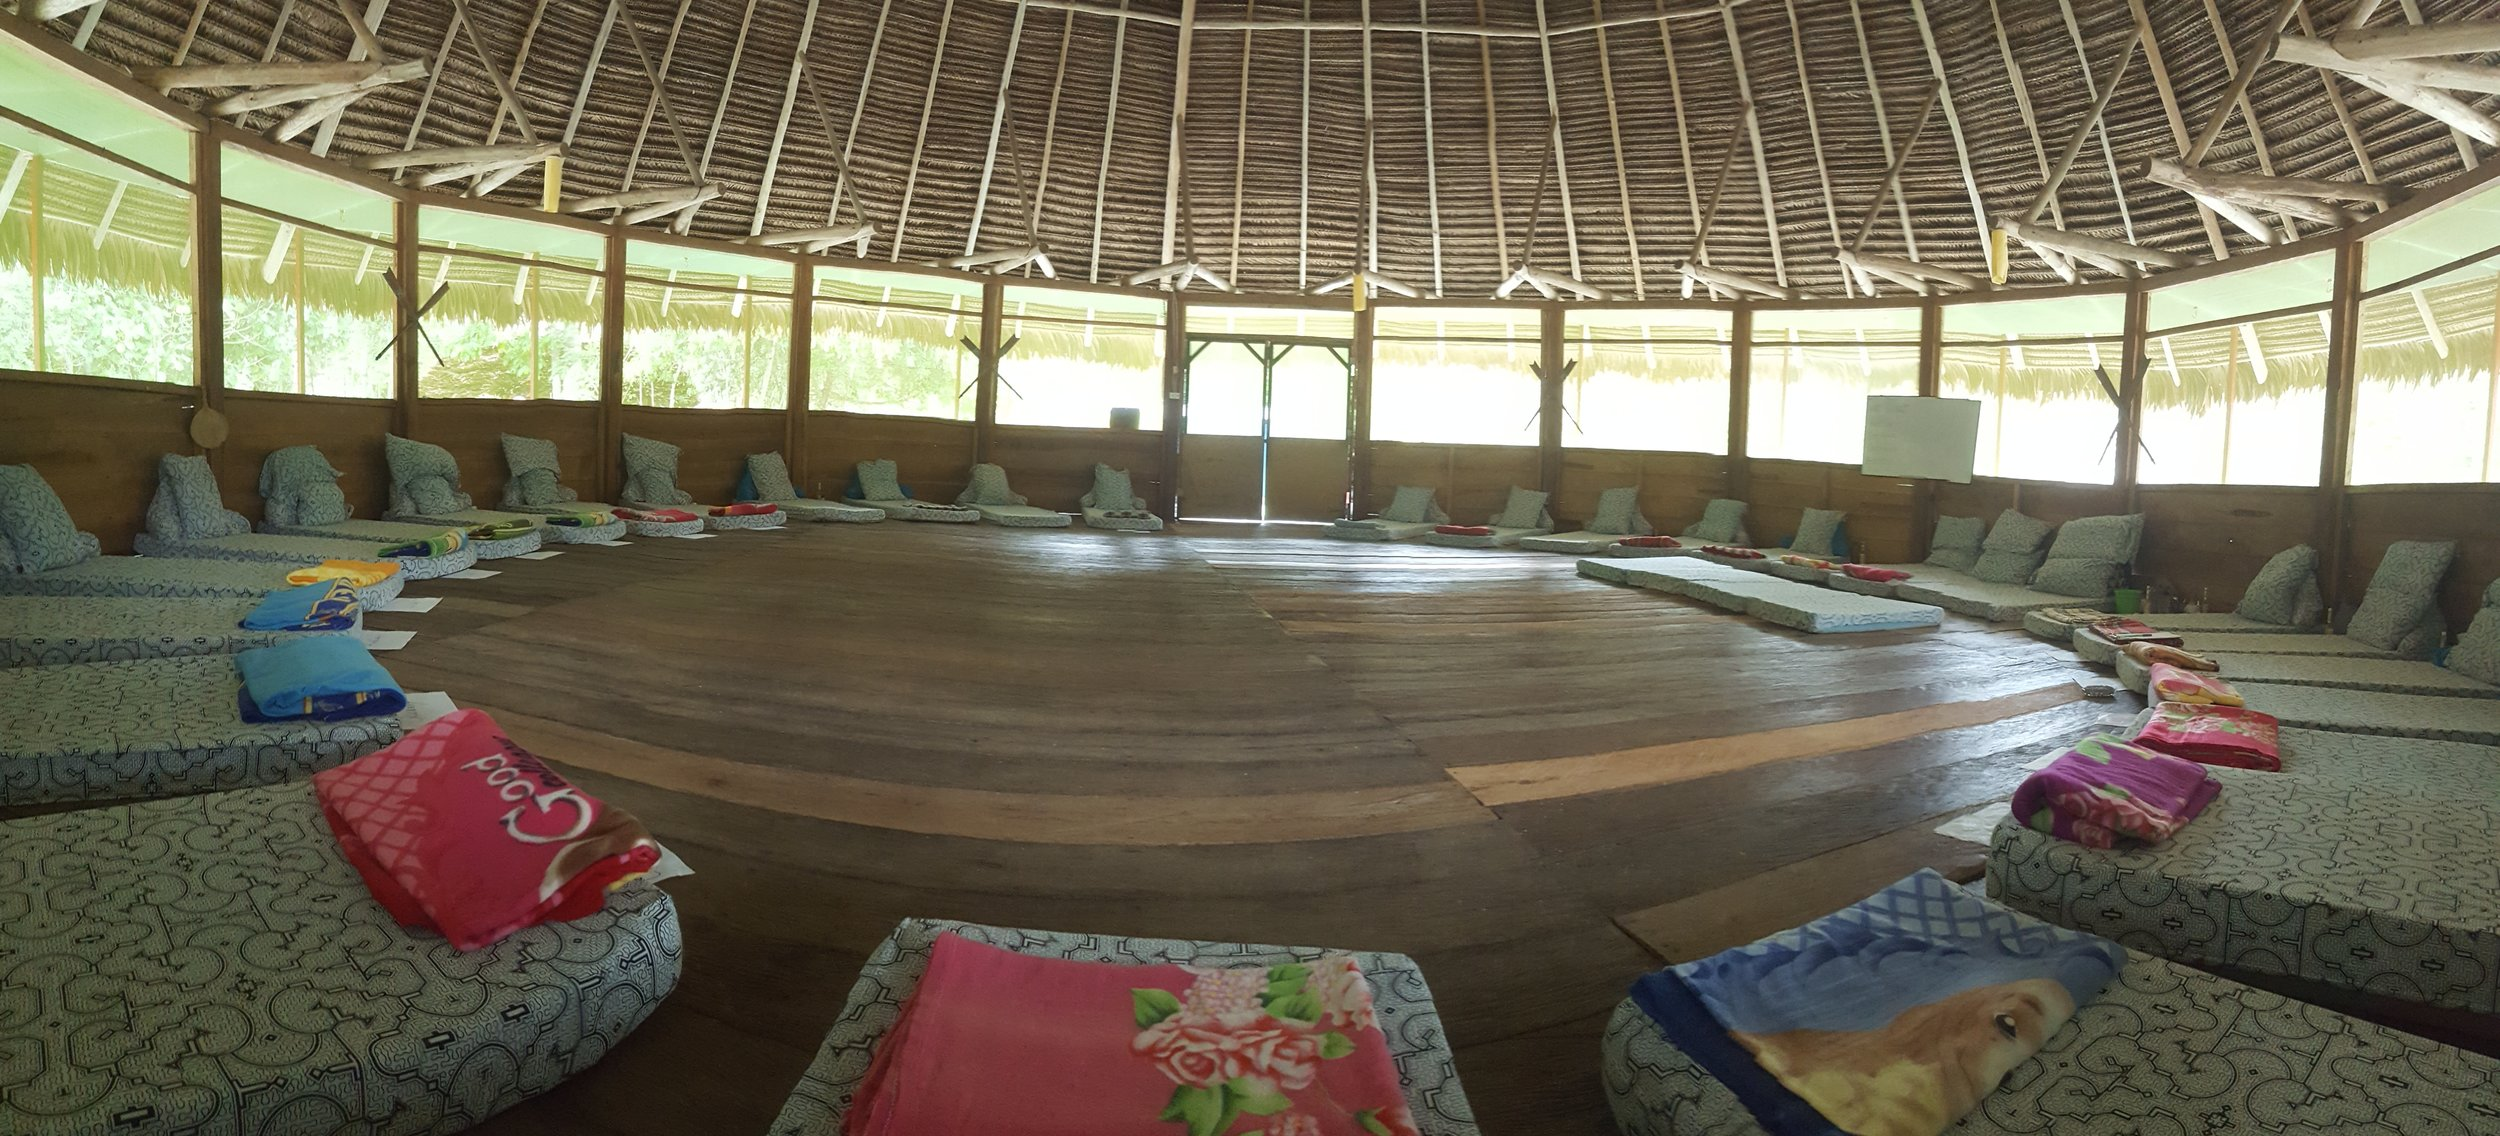 The Maloka where evening Ceremonies are held Monday, Tuesday, Wednesday and Thursday evenings beginning at 8pm led by Master Shaman  Ricardo Amaringo  of  Nihue Rao .